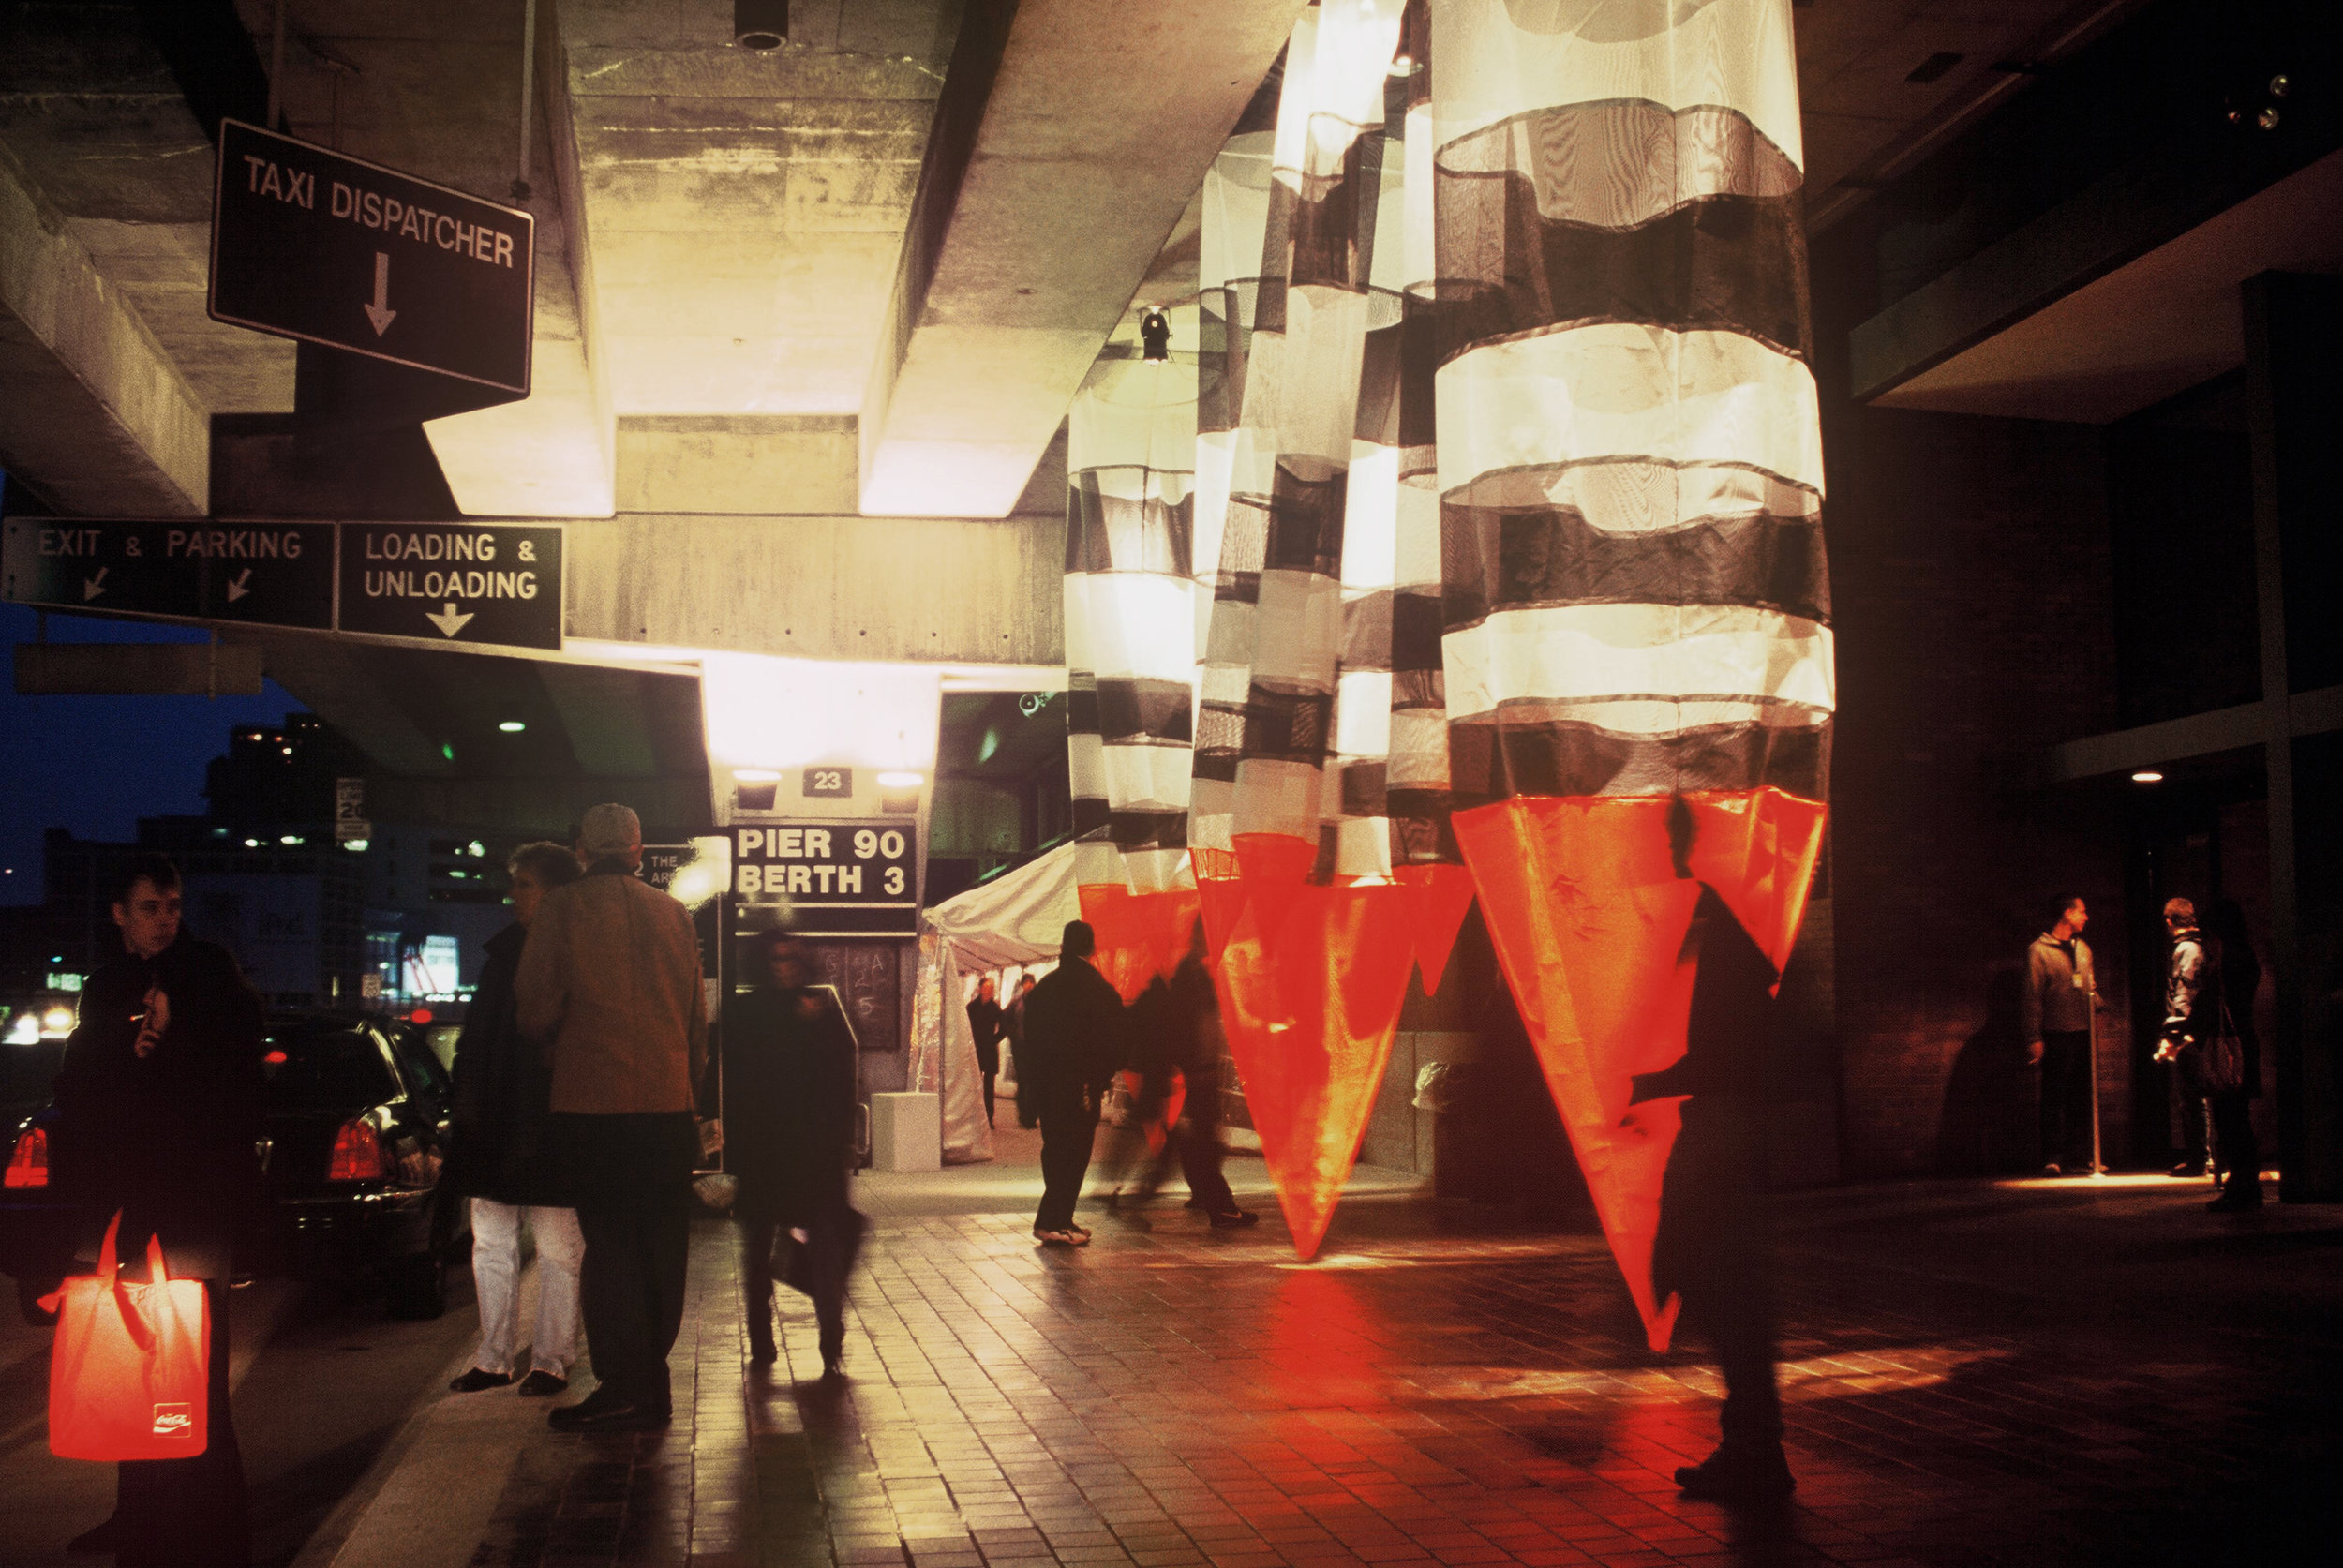 Roadside Shrine NYC_Echelman_PhotoStudioEchelman_2_YYM.jpg